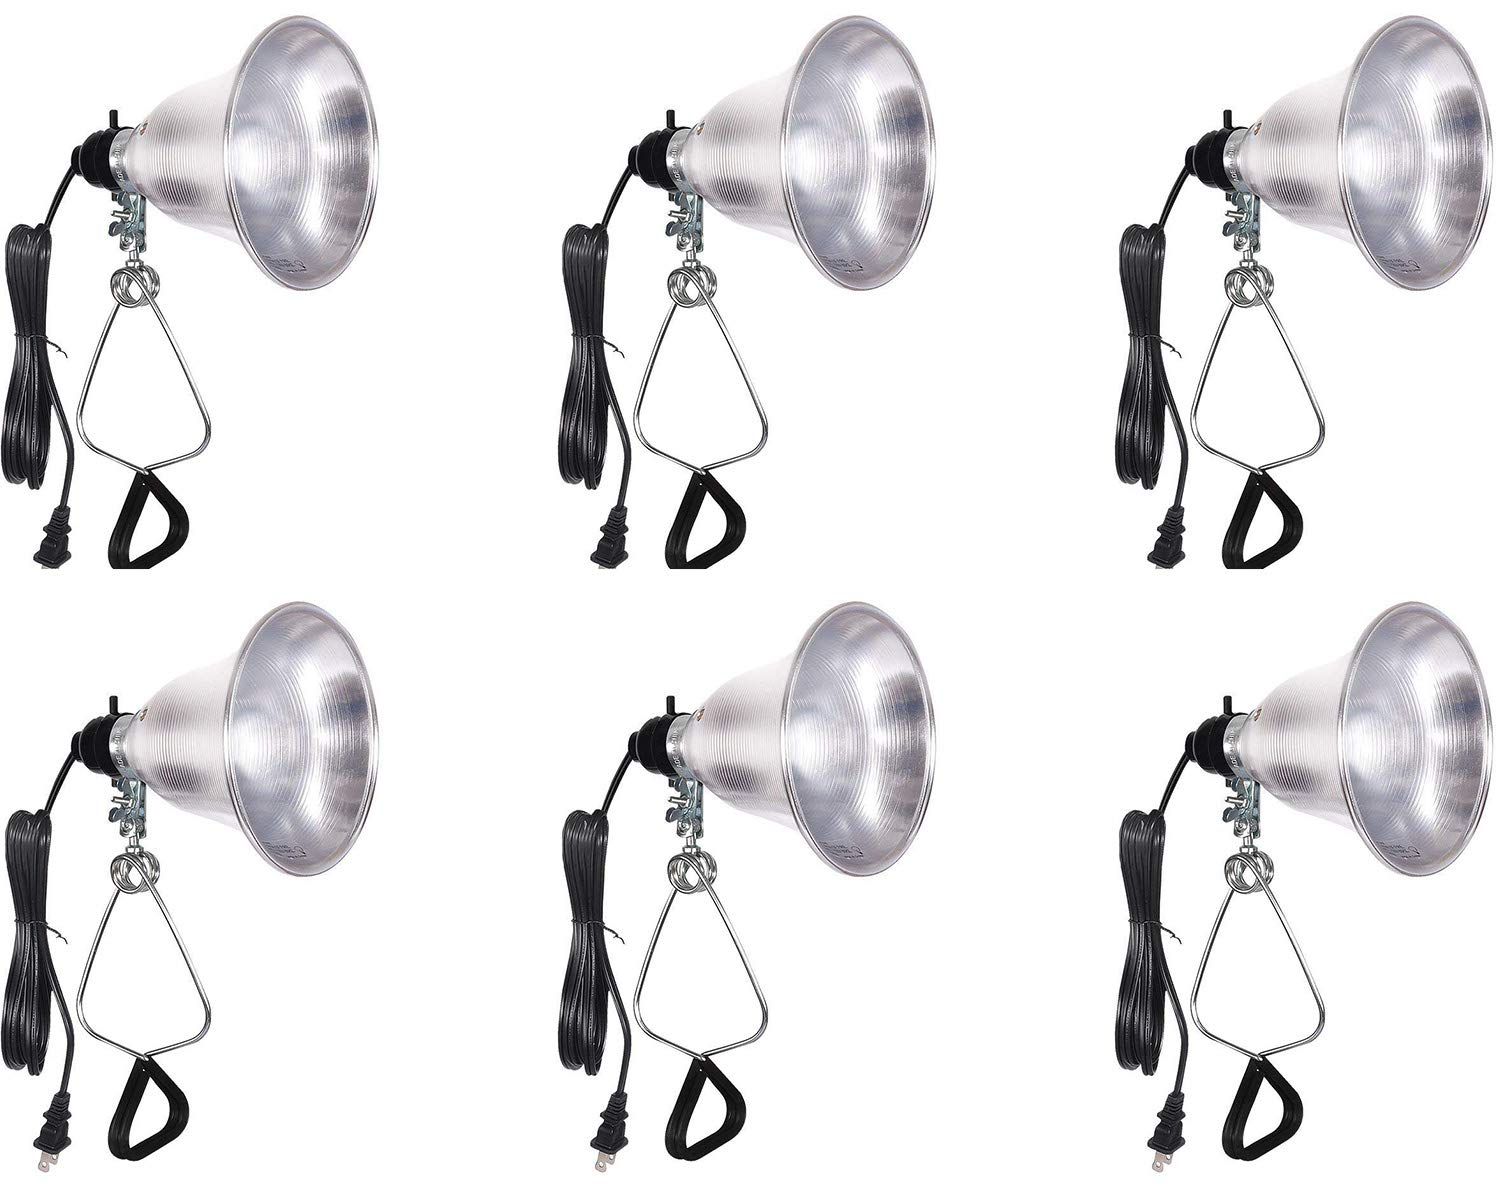 Simple Deluxe HIWKLTCLAMPLIGHTSX6 6-Pack Clamp Lamp Light with 5.5 Inch Aluminum Reflector up to 60 Watt E26/E27 (no Bulb Included) 6 Feet 18/2 SPT-2 Cord UL Listed by Simple Deluxe